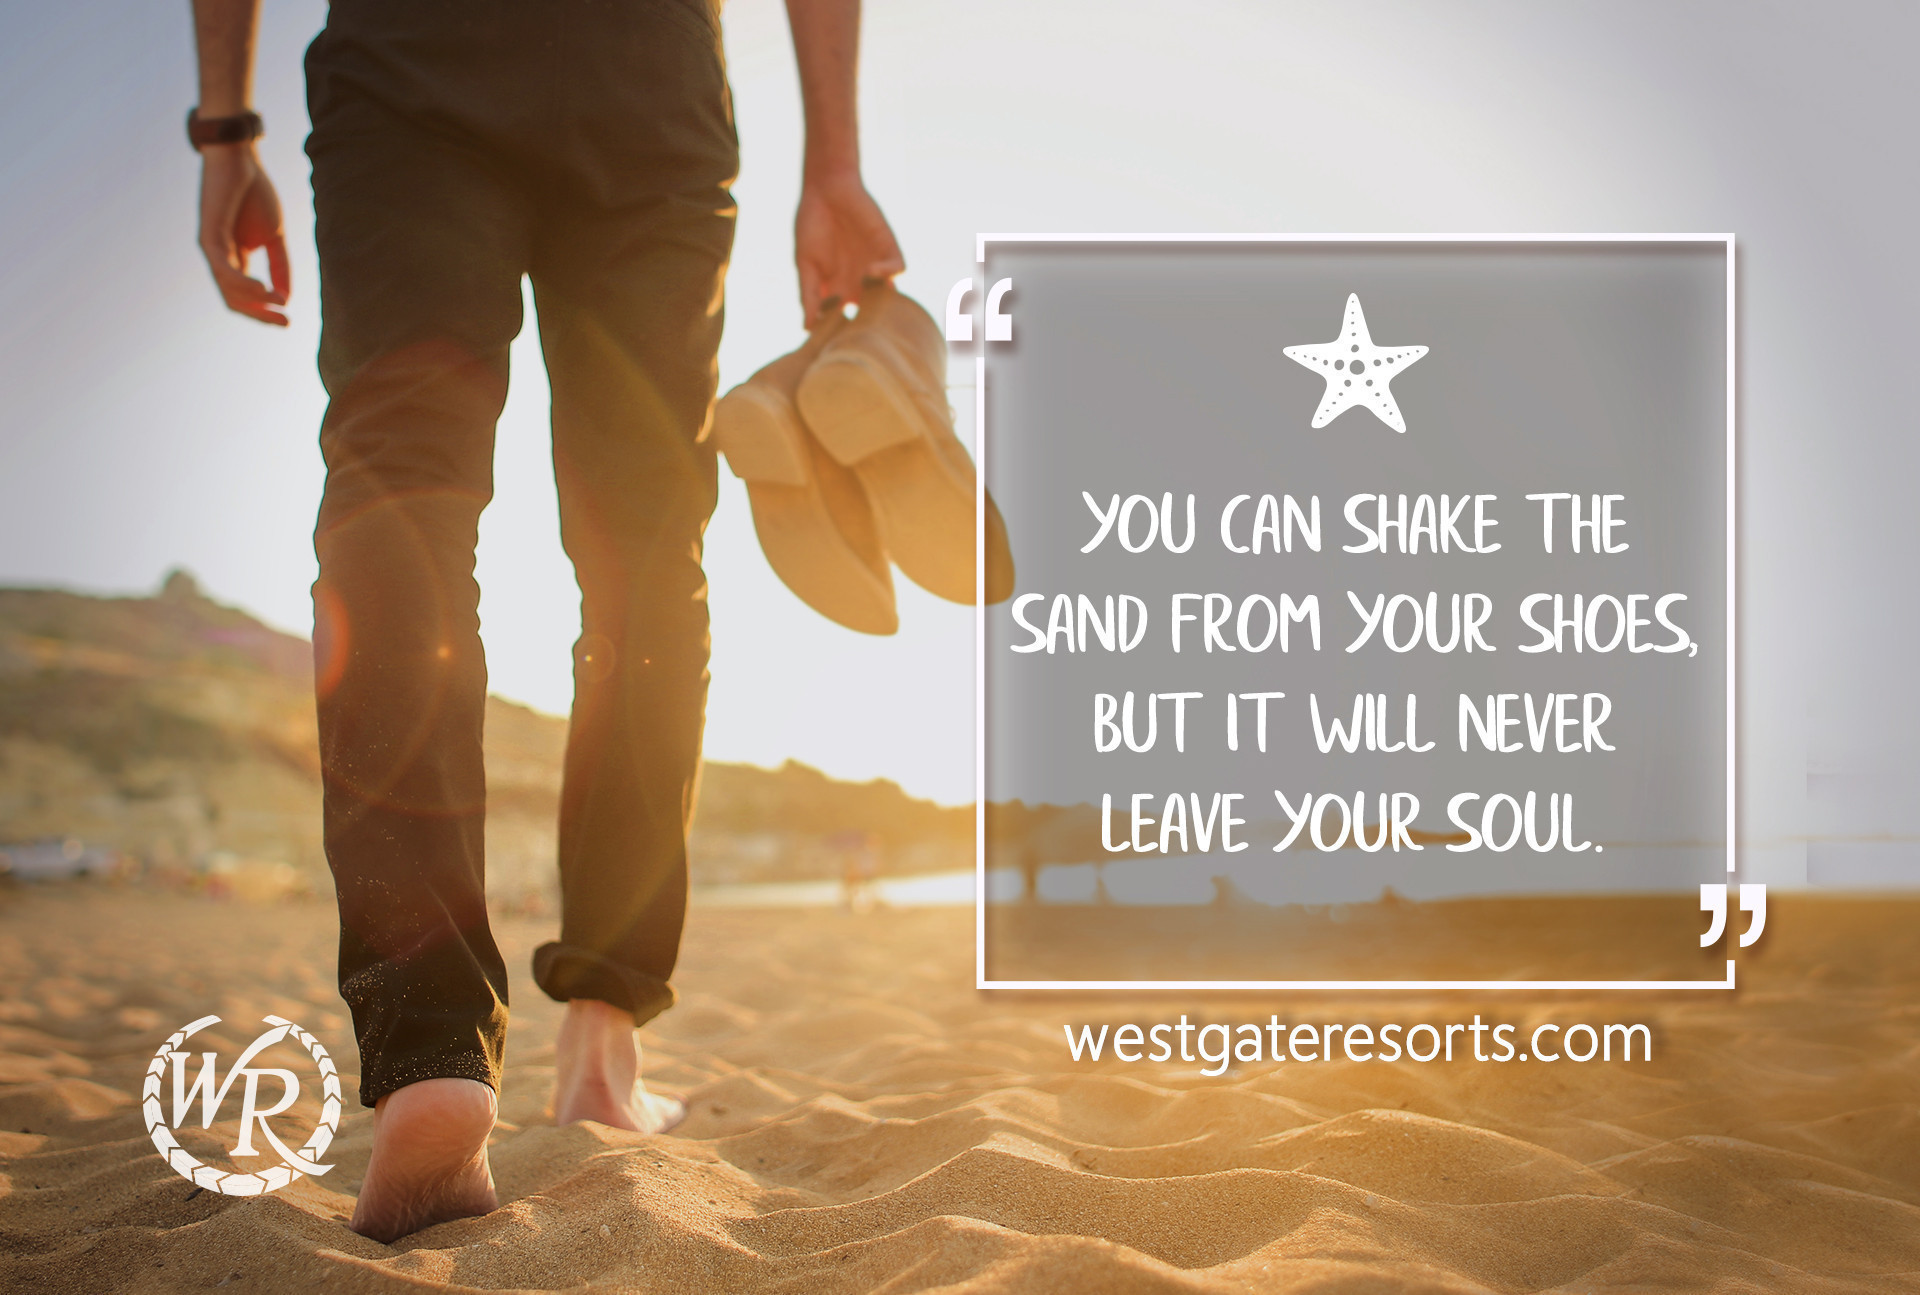 You can shake the sand from your shoes, but it will never leave your soul | Travel Motivation Quotes | Inspiring Sayings